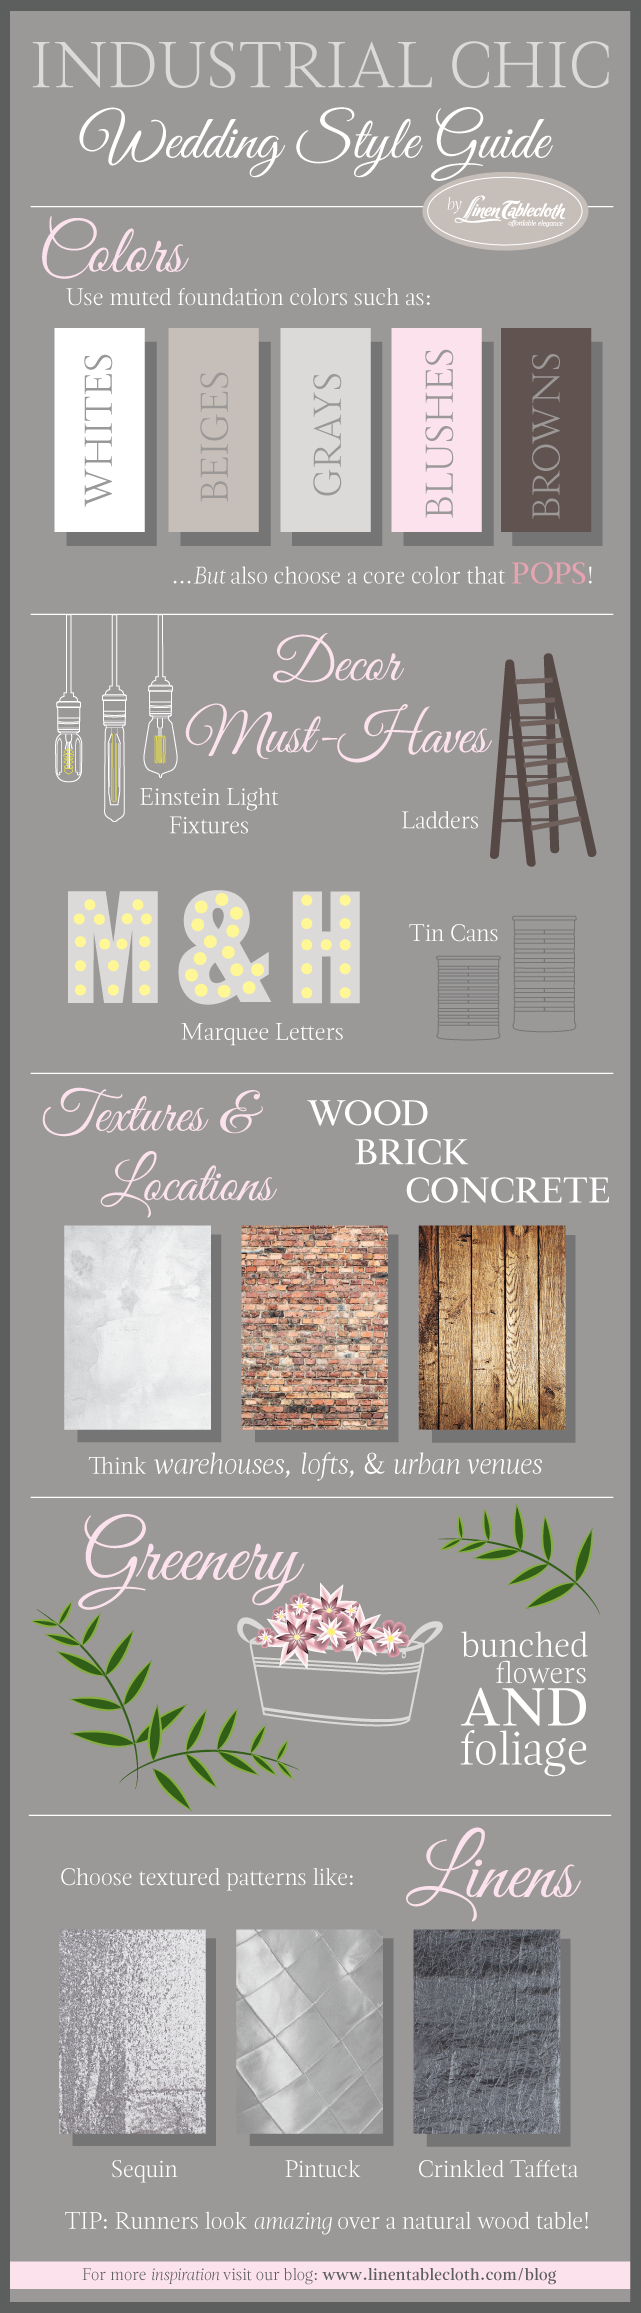 Industrial Chic Wedding Style Guide Infographic | Industrial chic ...